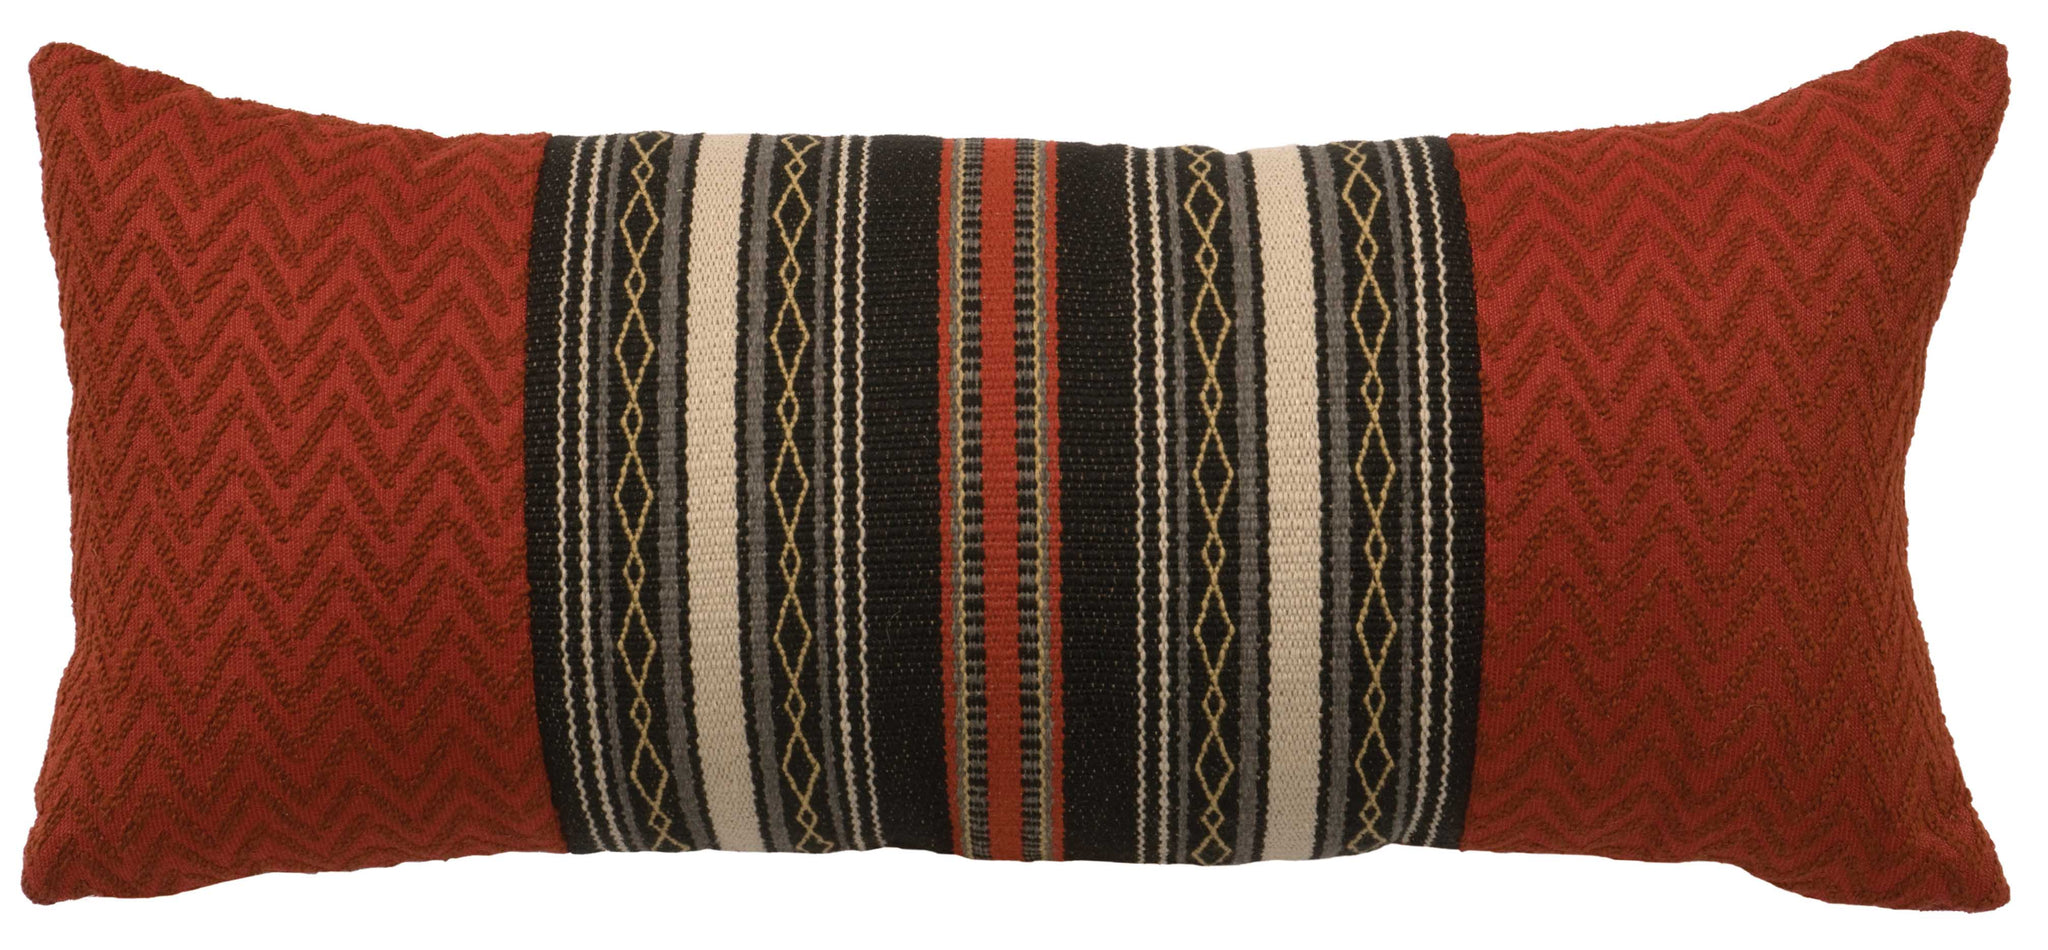 Red Pepper Oblong Pillow Wooded River - unique linens online